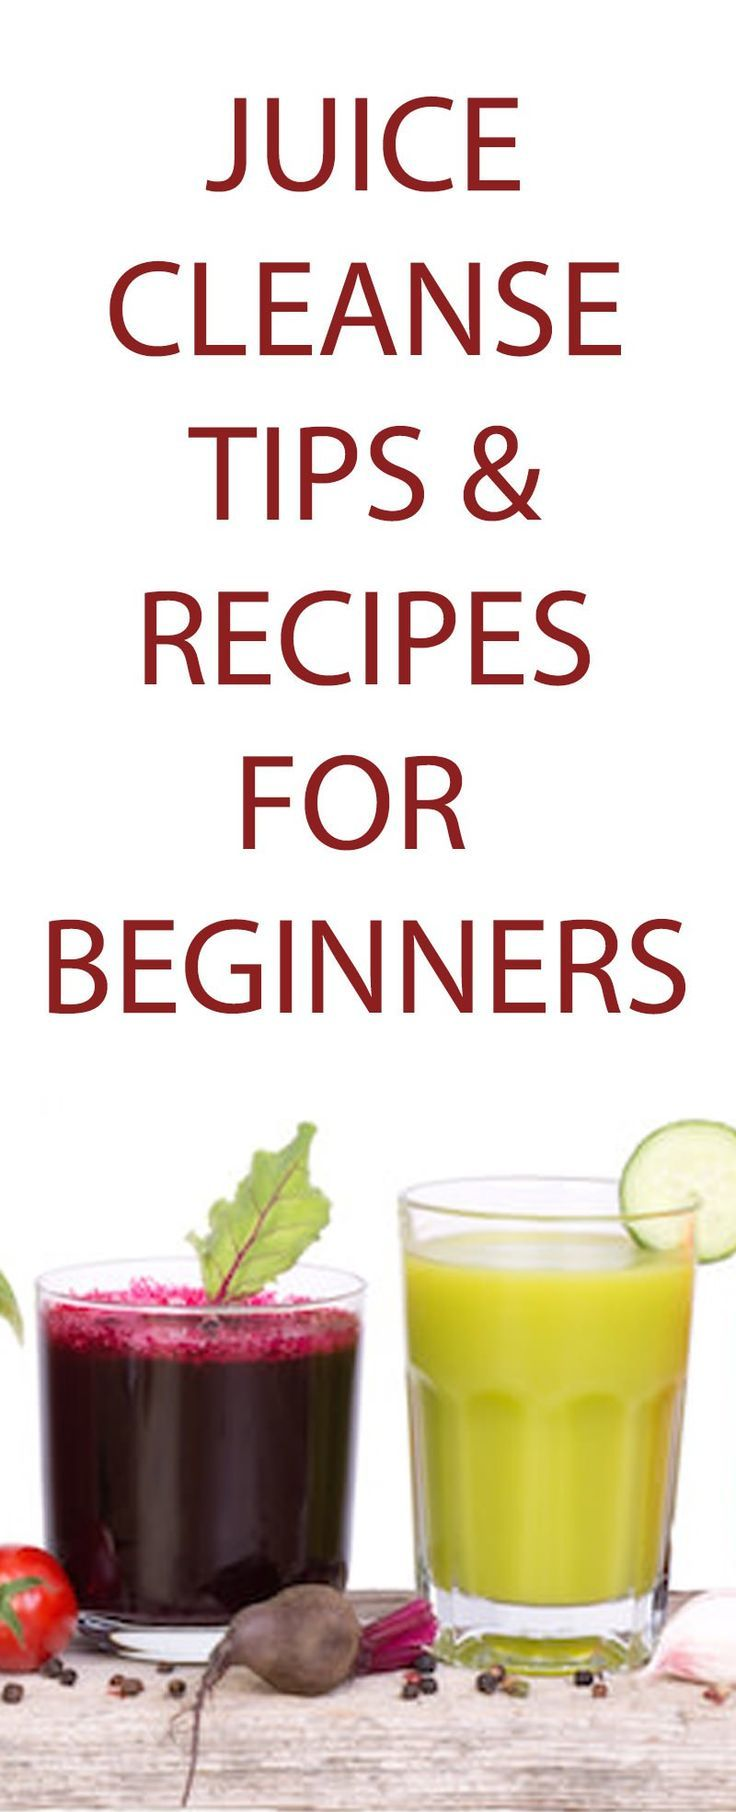 Die besten 25 blueprint cleanse ideen auf pinterest ganzkrper want to start a juice cleanse read our juice cleanse tips and check out our malvernweather Images